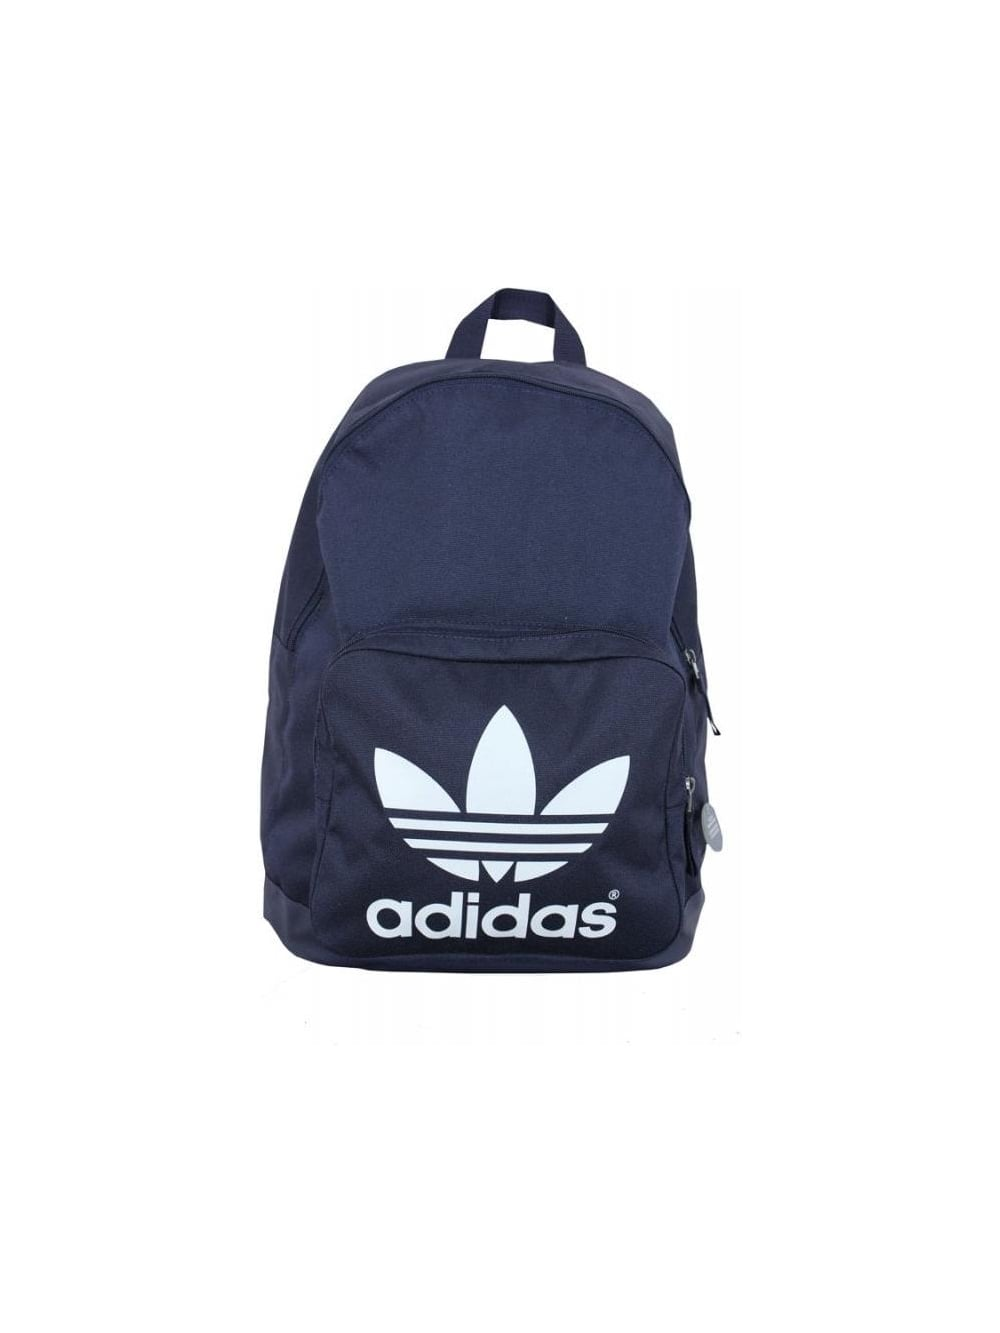 Adidas Originals AC Classic Backpack in Legend Ink - Northern Threads e0466548f3